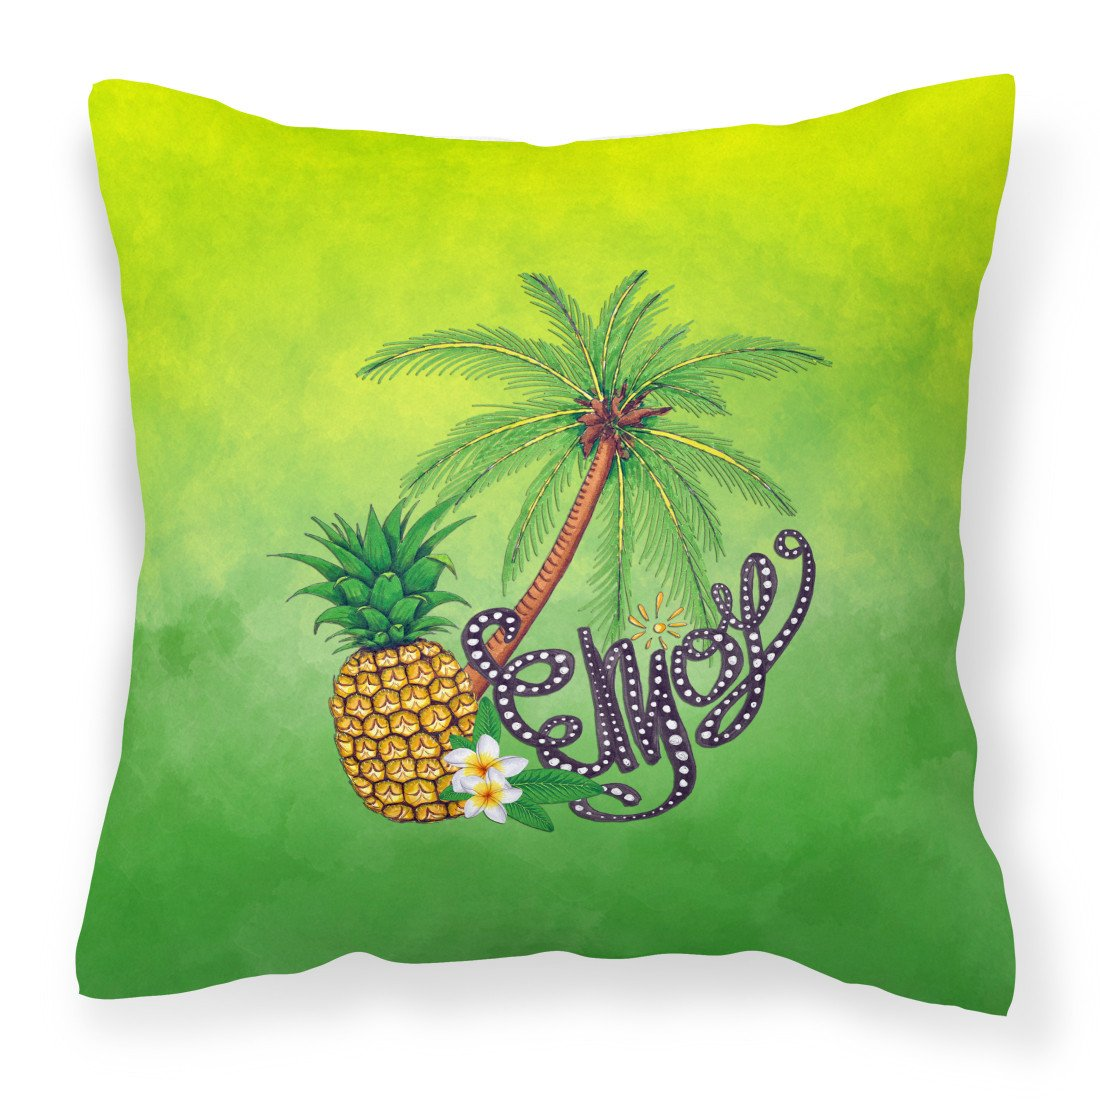 Summer Enjoy Fabric Decorative Pillow BB7456PW1818 by Caroline's Treasures